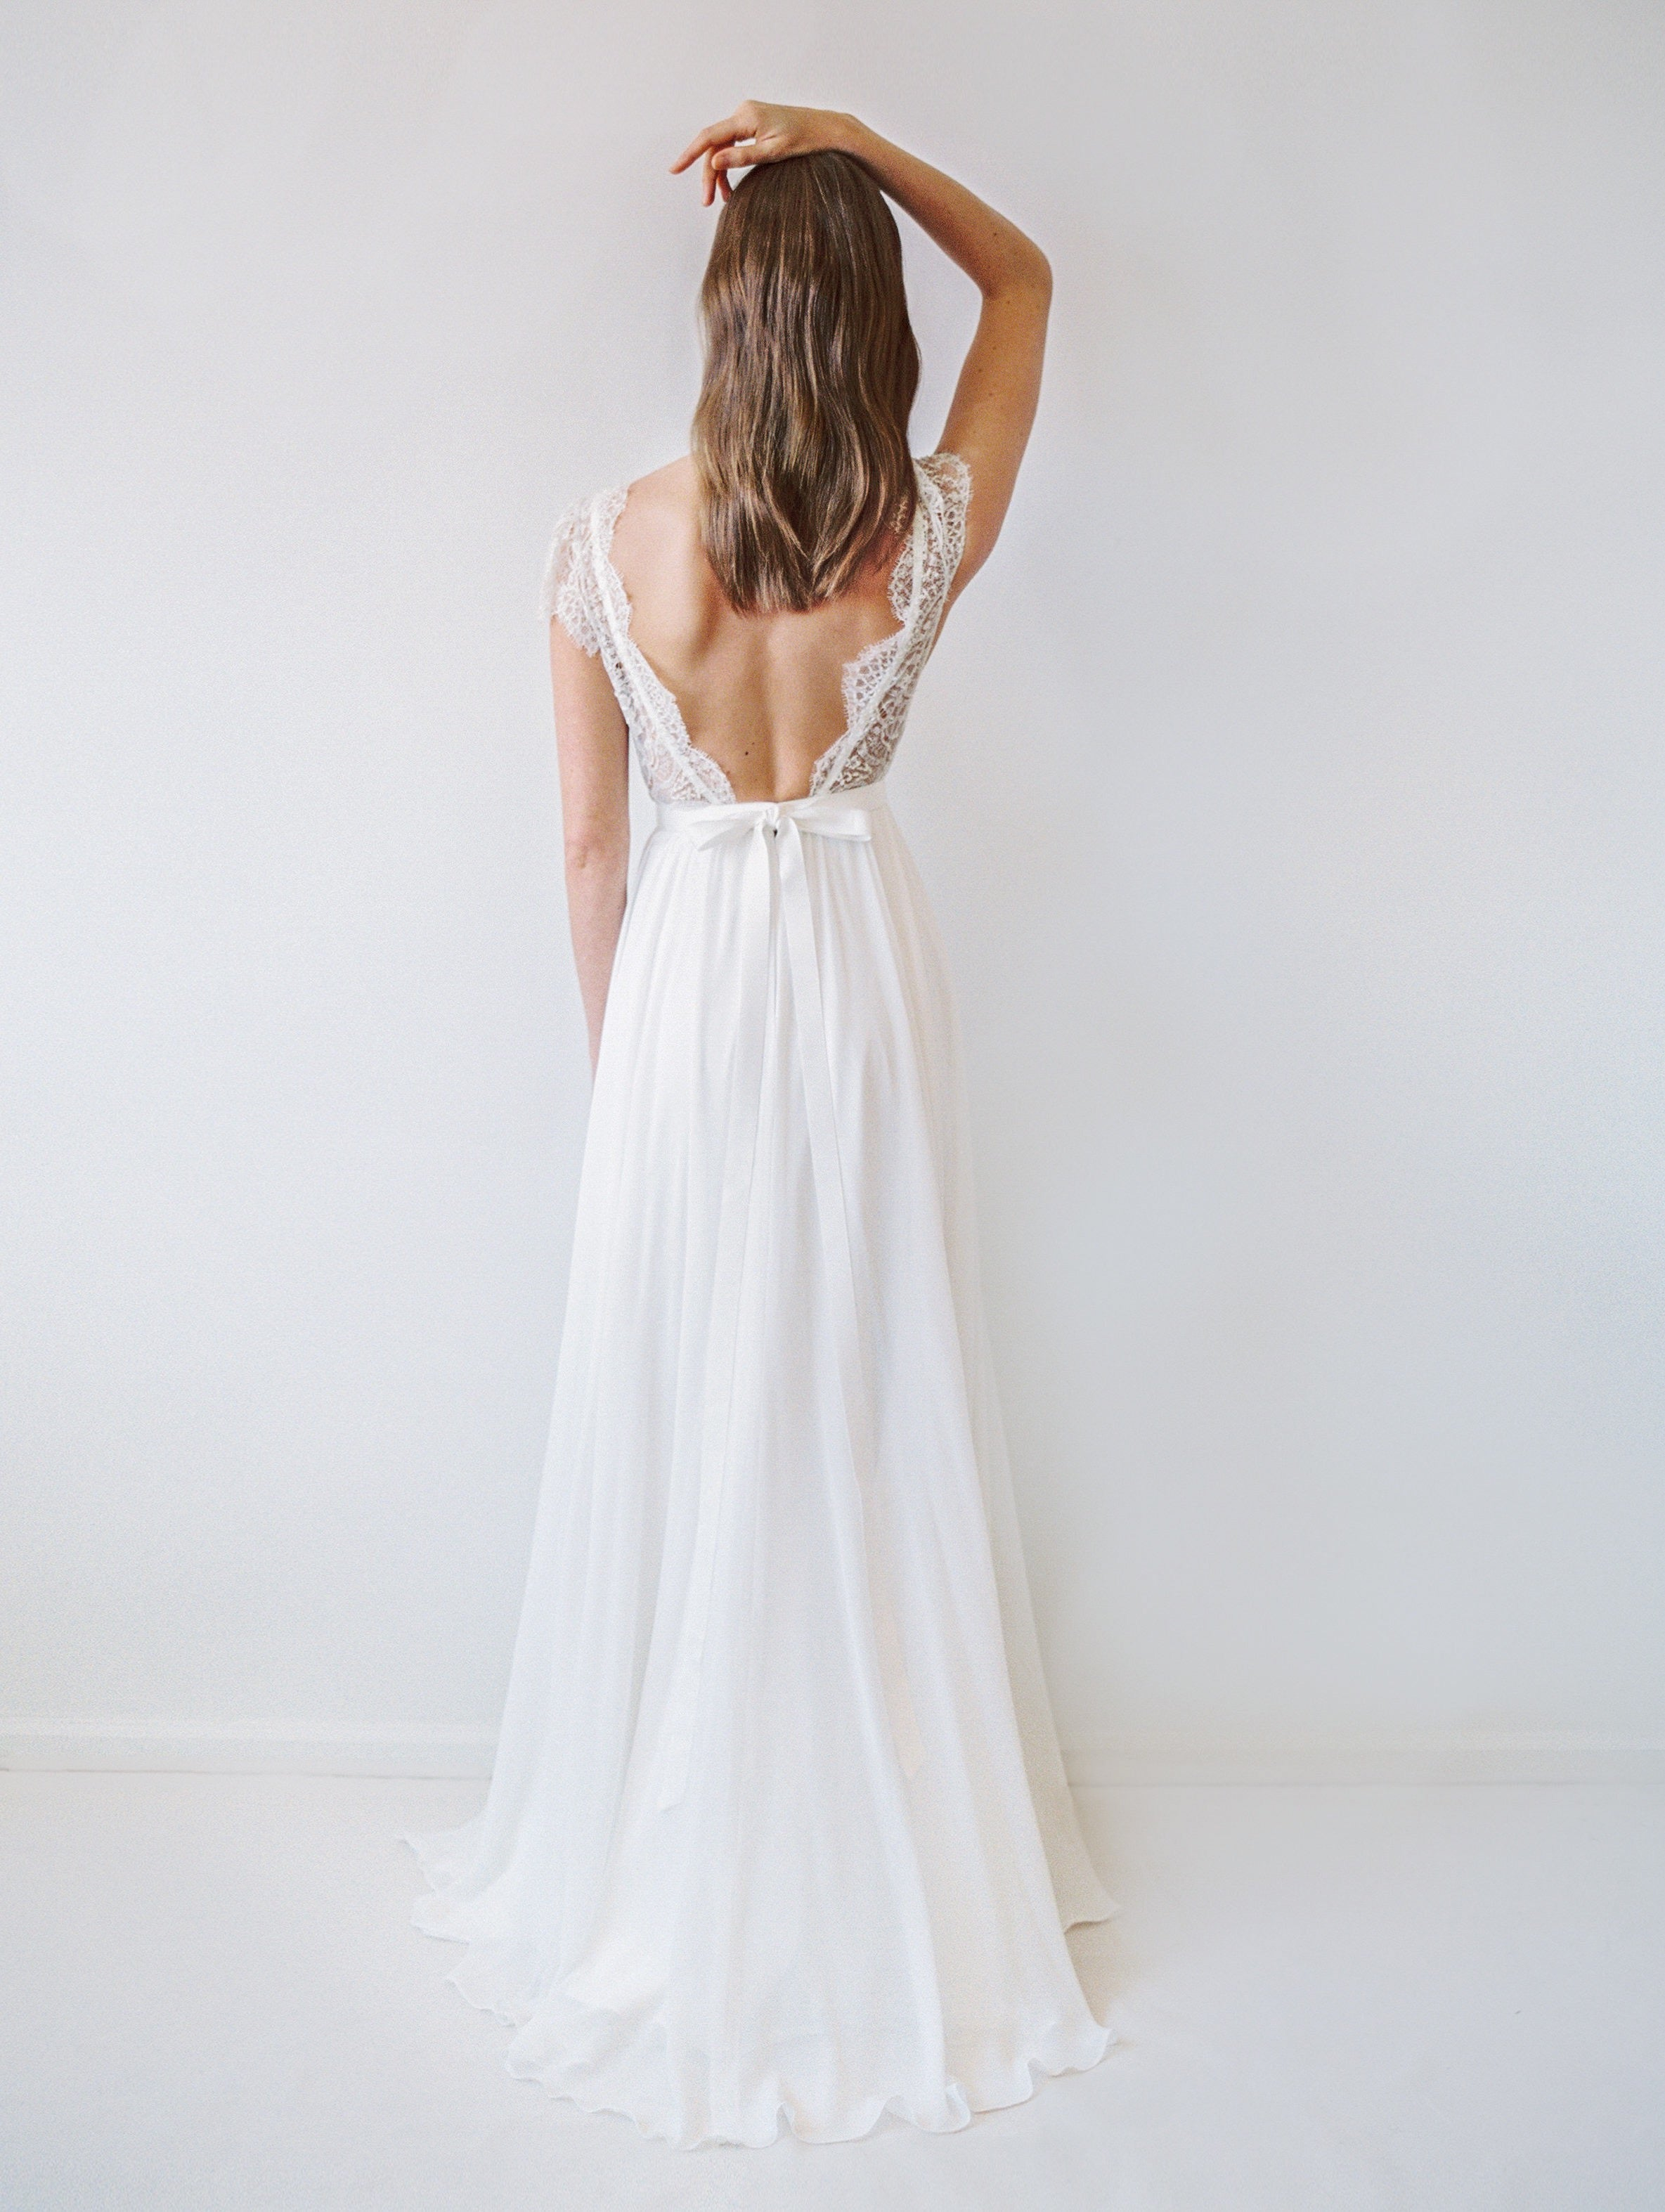 Flowy beach wedding dress with beaded cap sleeves and an open back